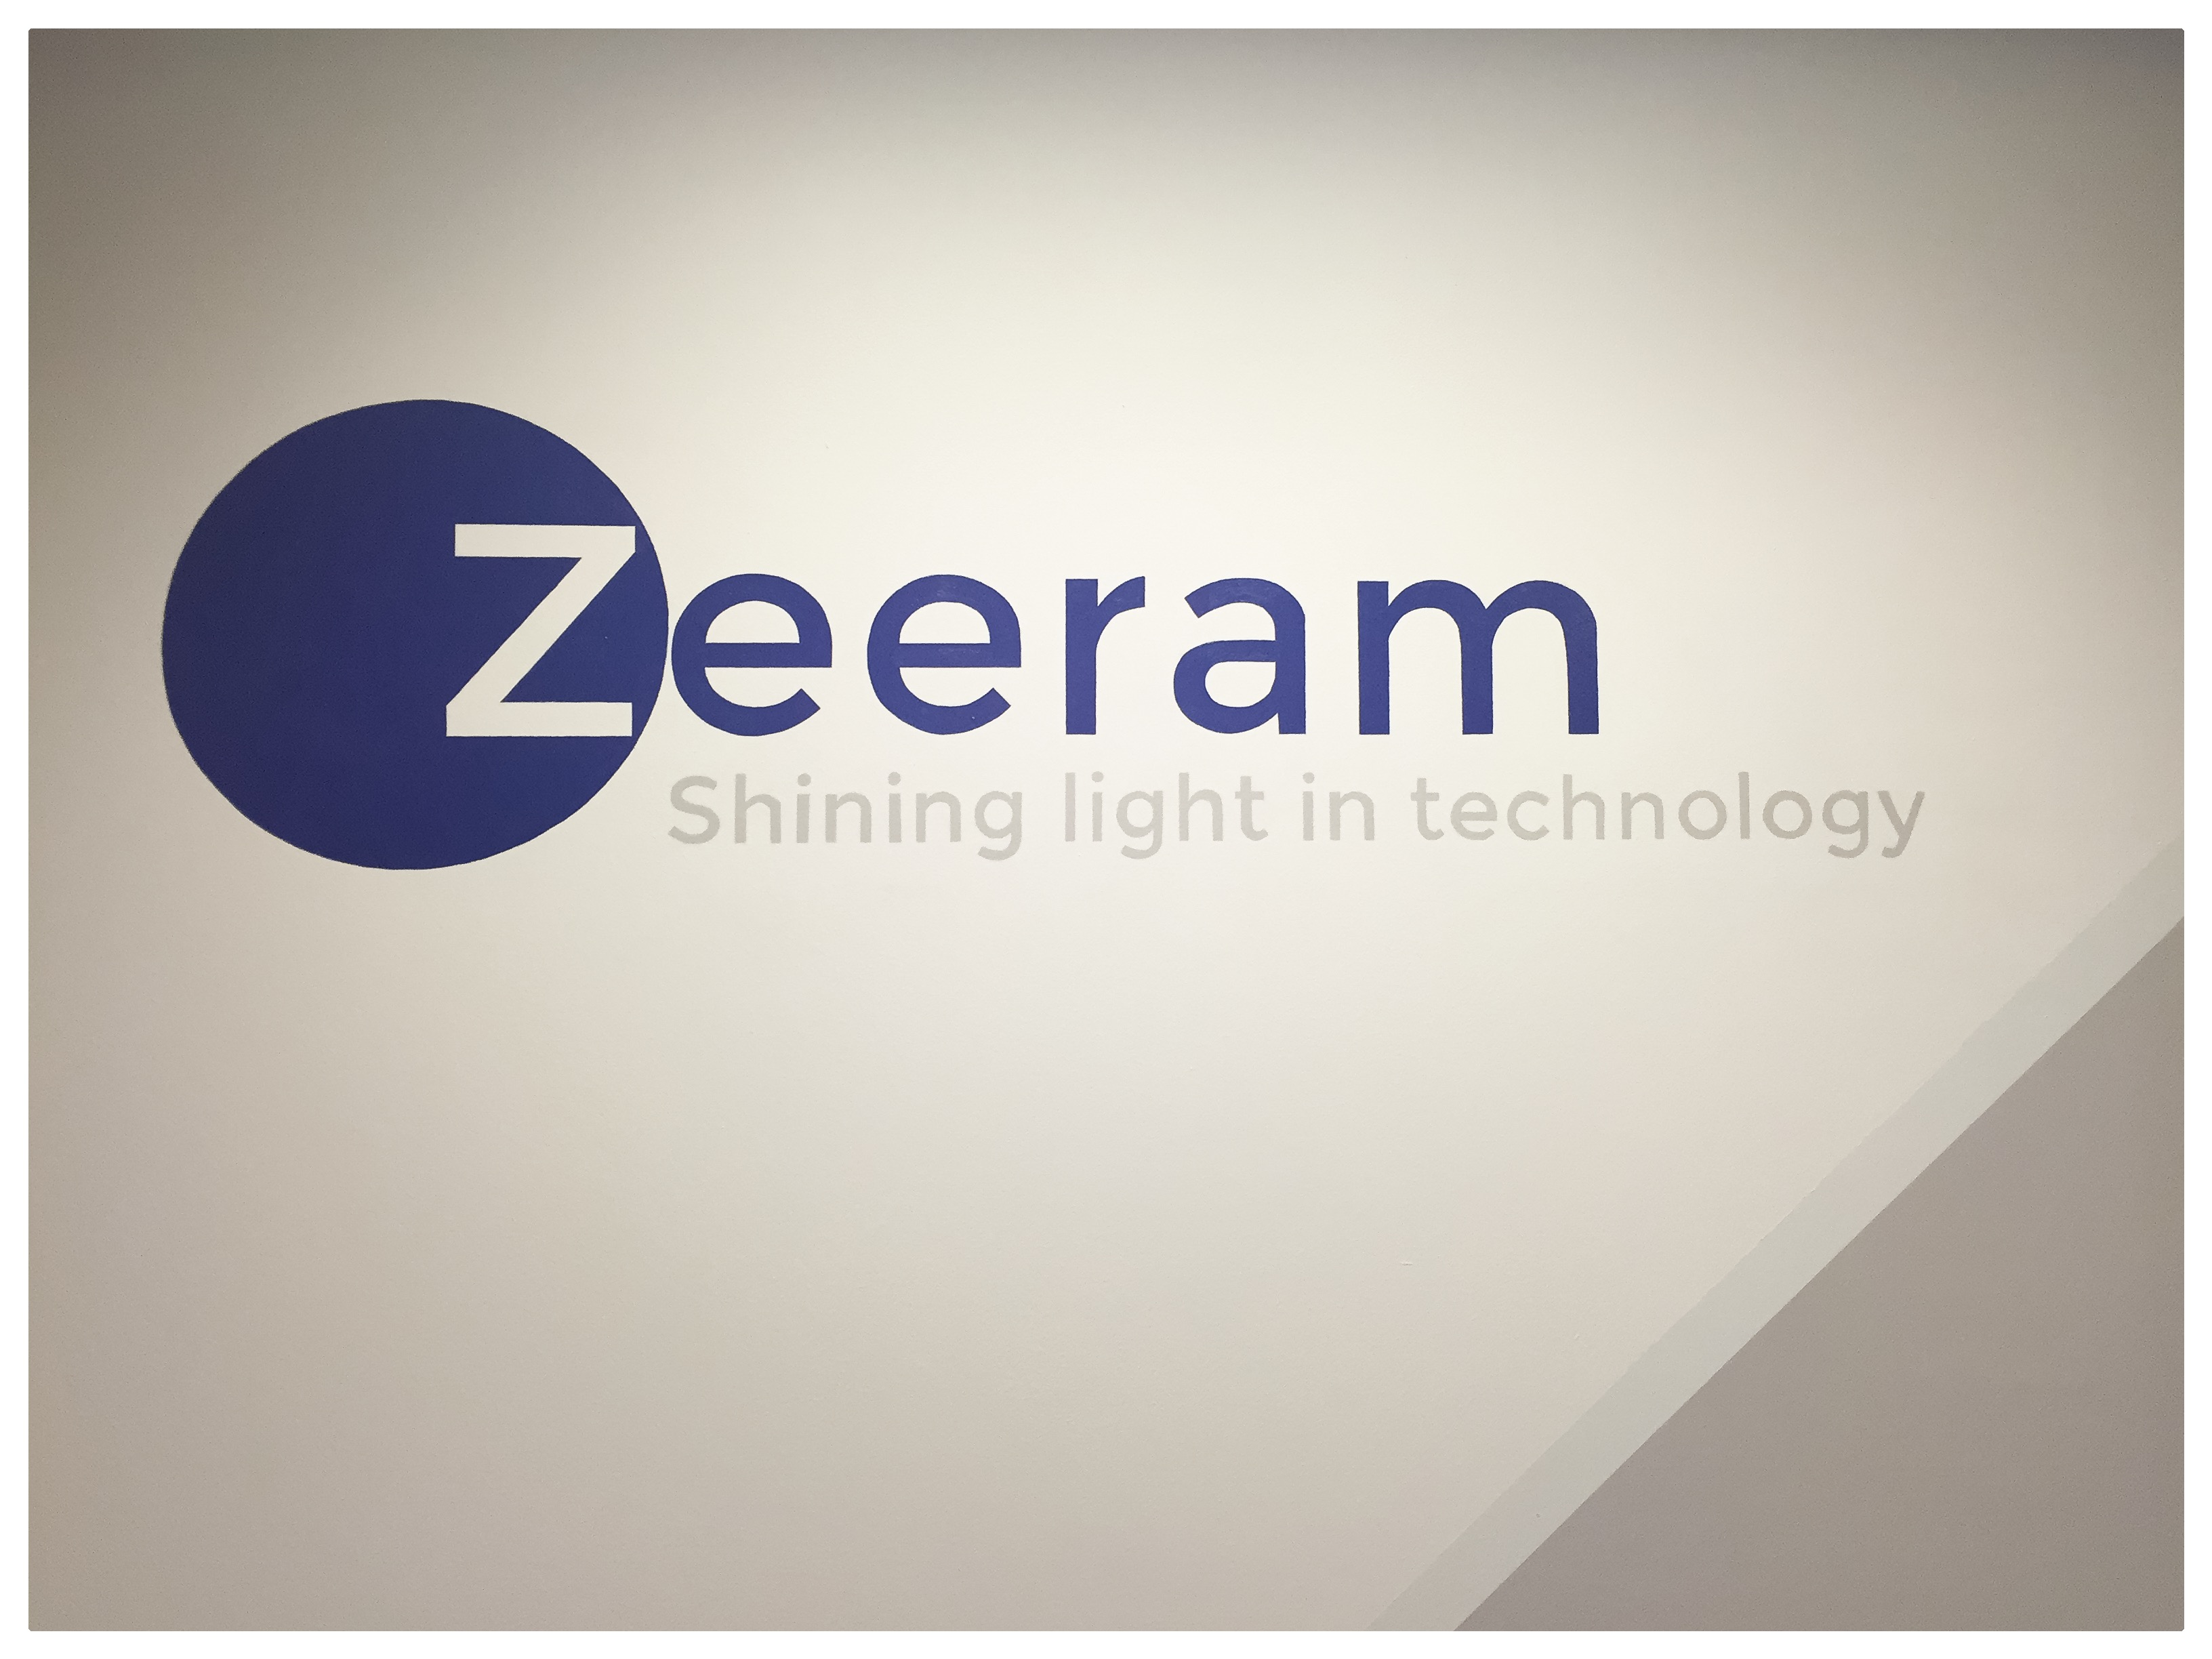 Zeeram Corporate Logo